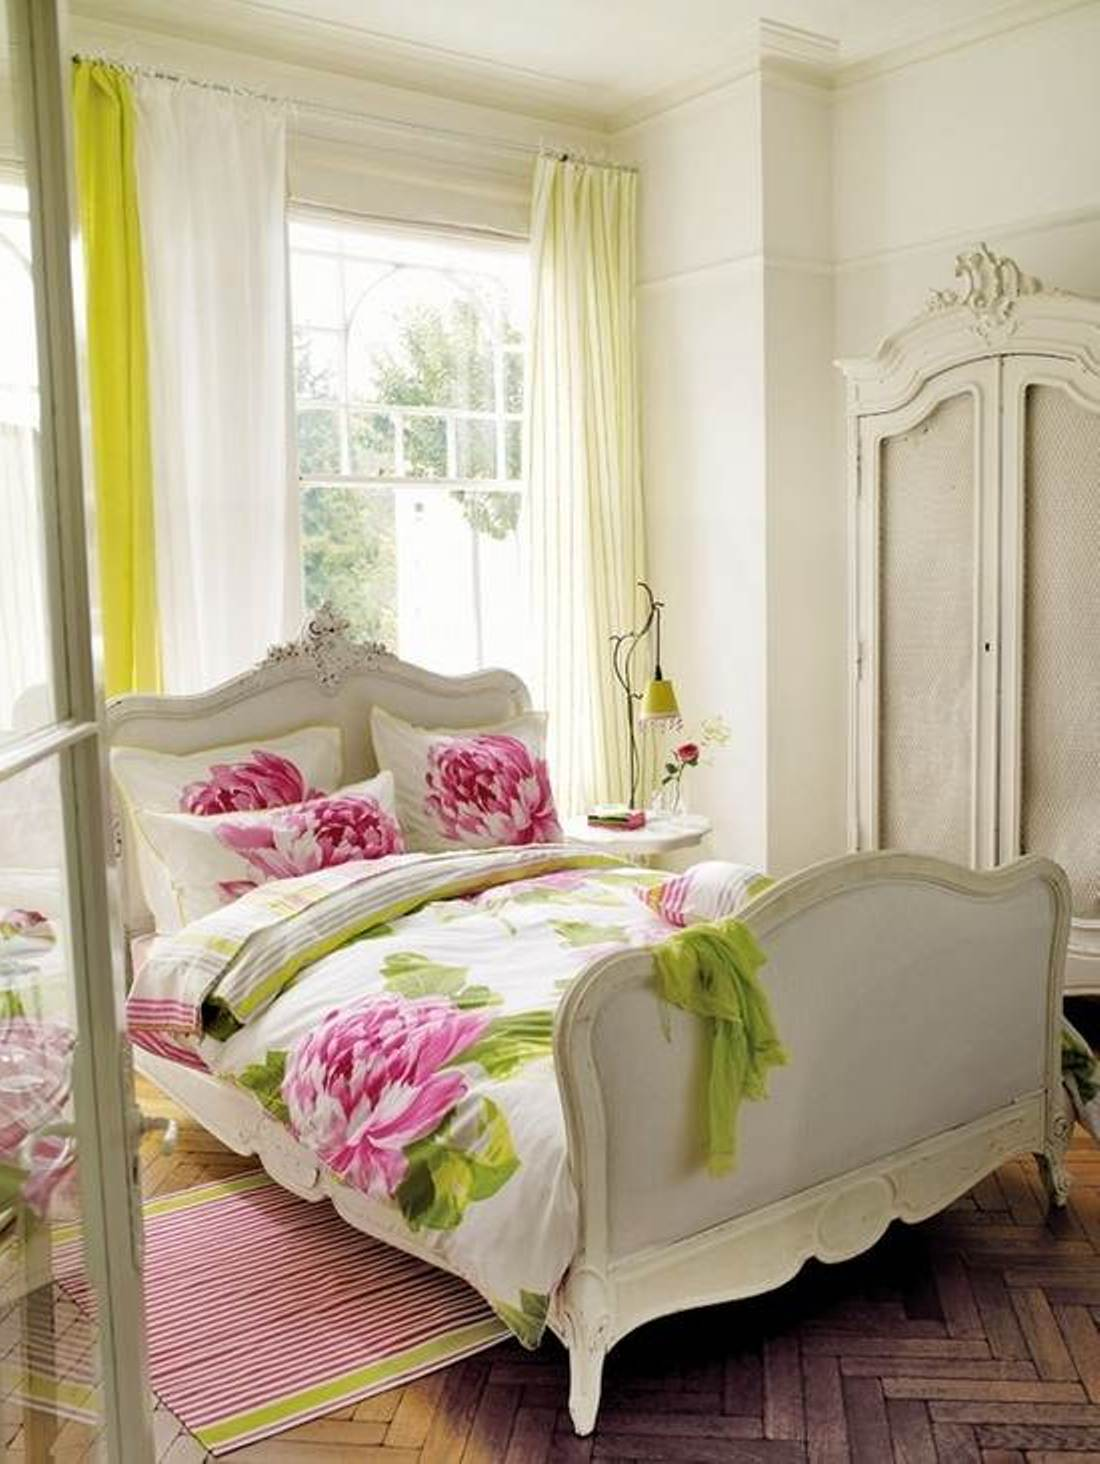 Bedroom ideas for young adults women tumblr - Womens Bedroom Decorating Ideas 34 Flower Power